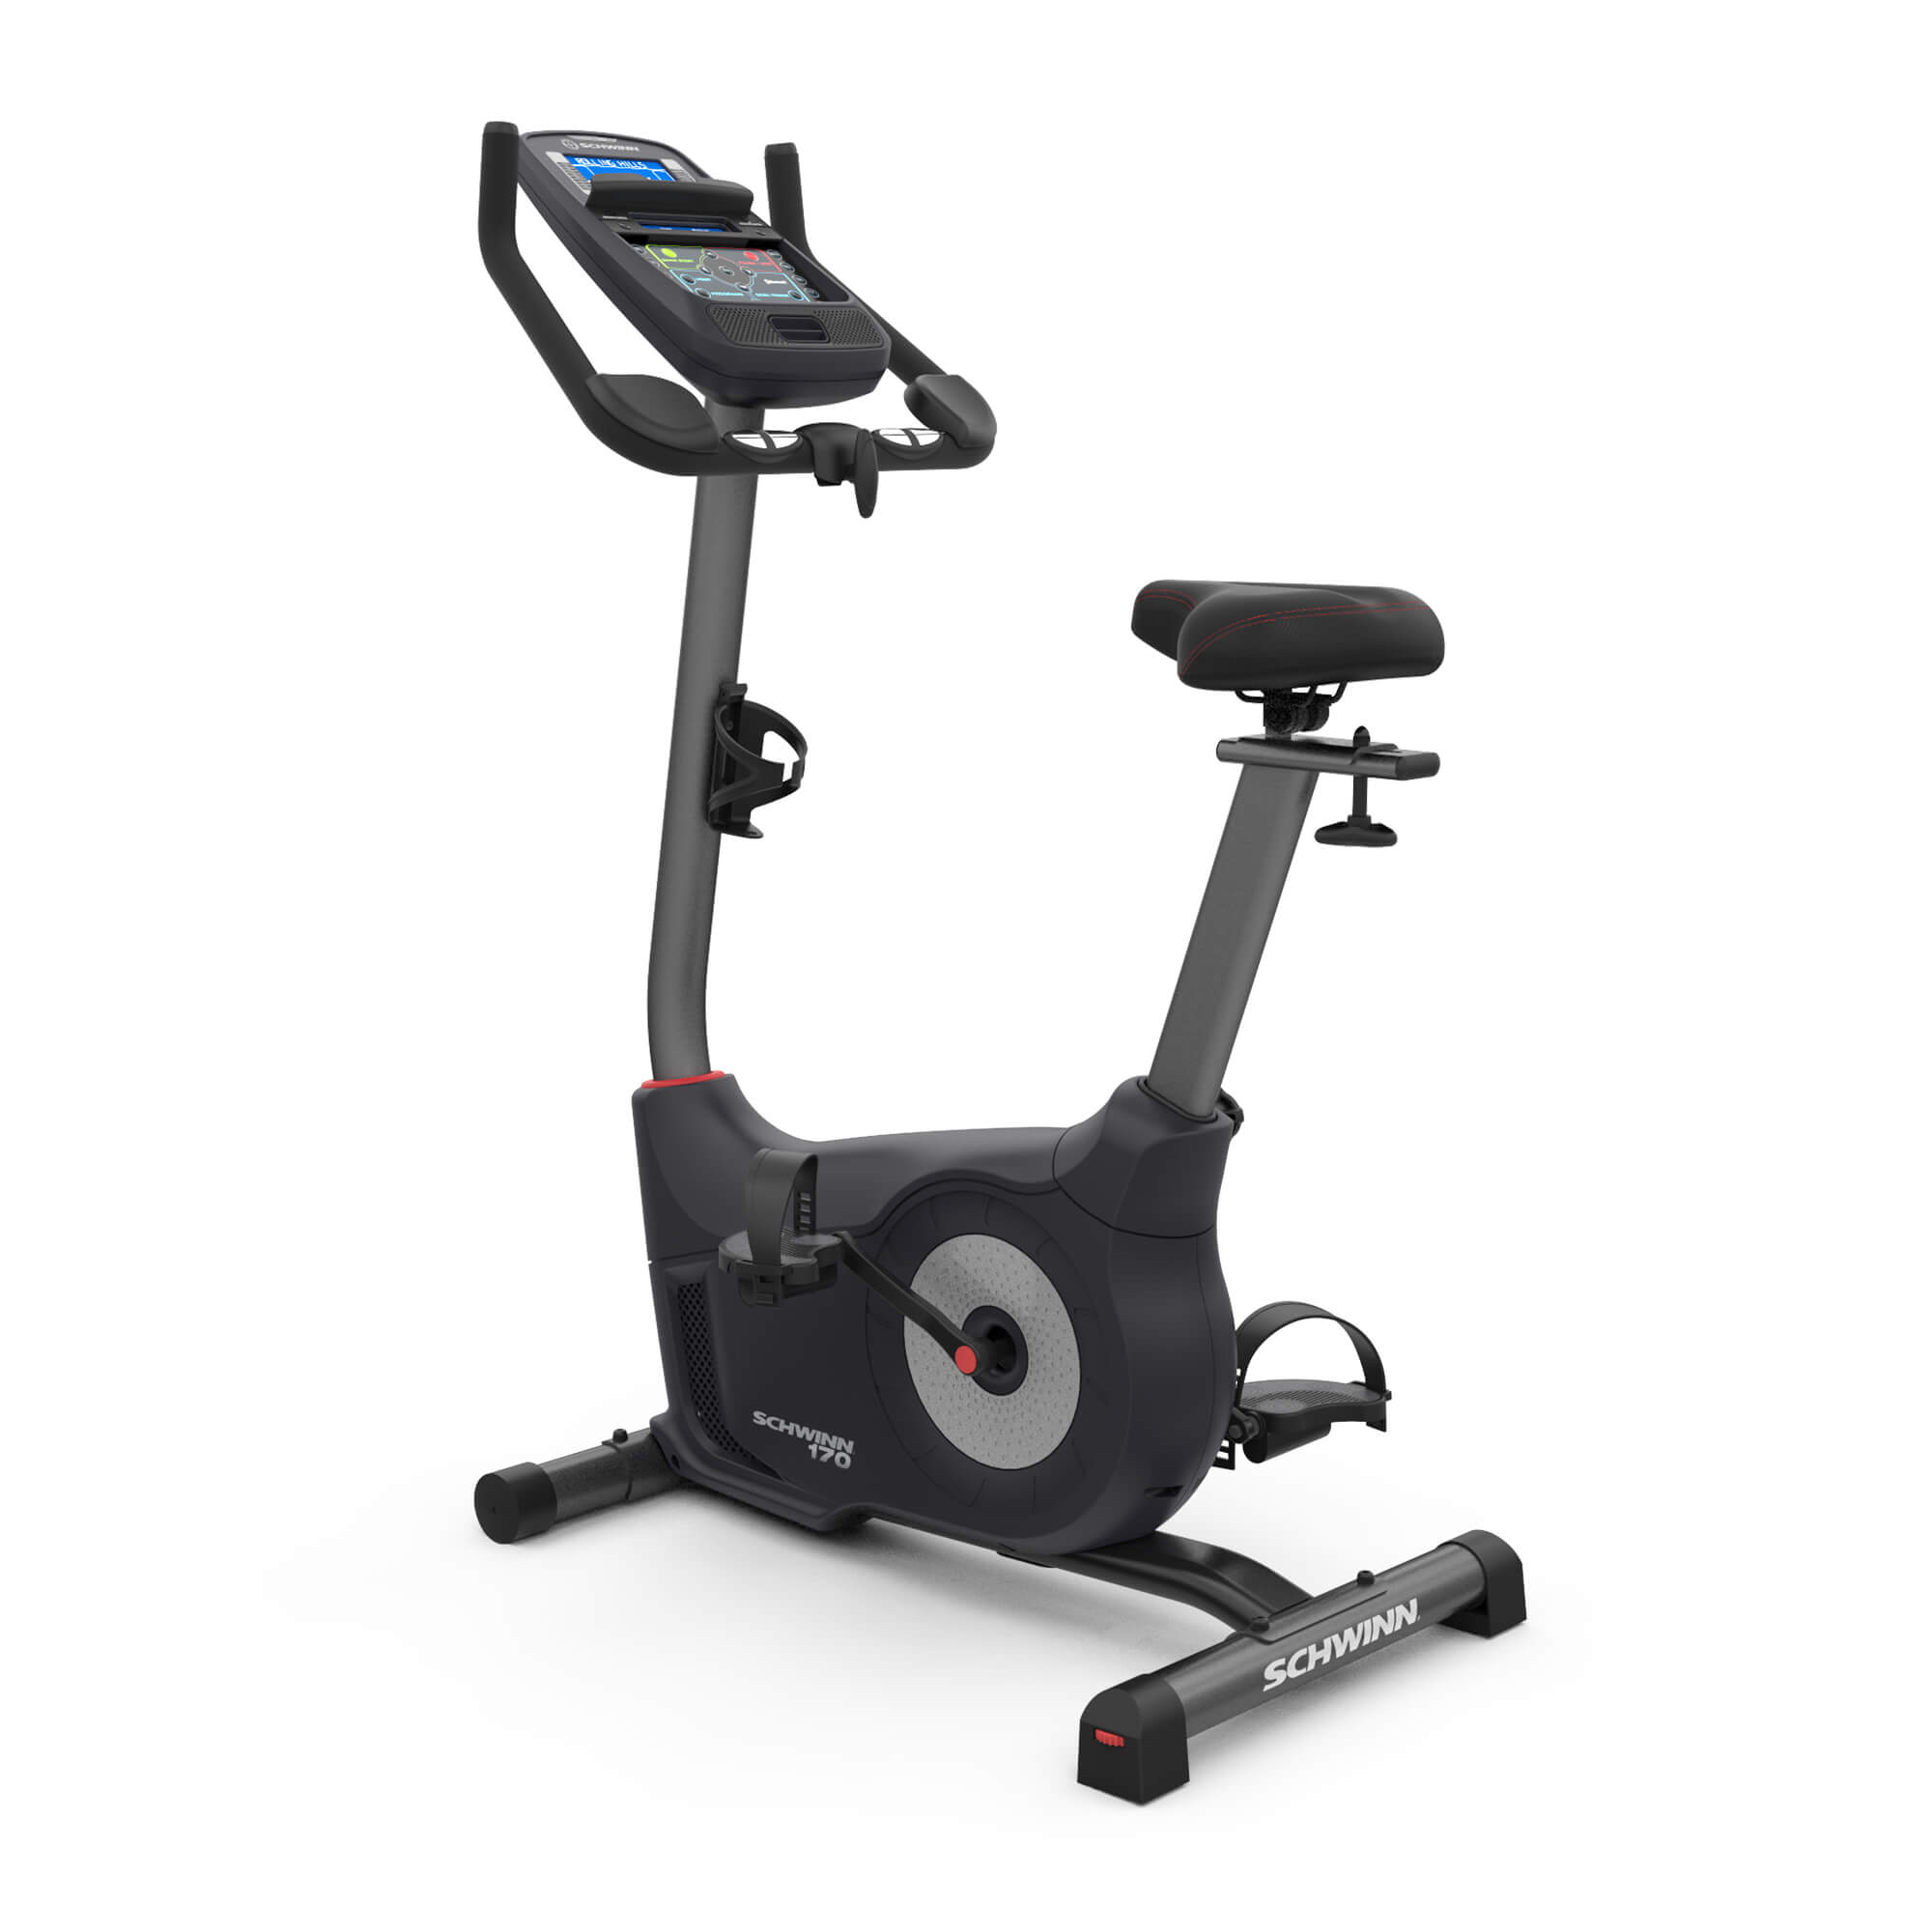 schwinn 170 upright bike schwinn. Black Bedroom Furniture Sets. Home Design Ideas